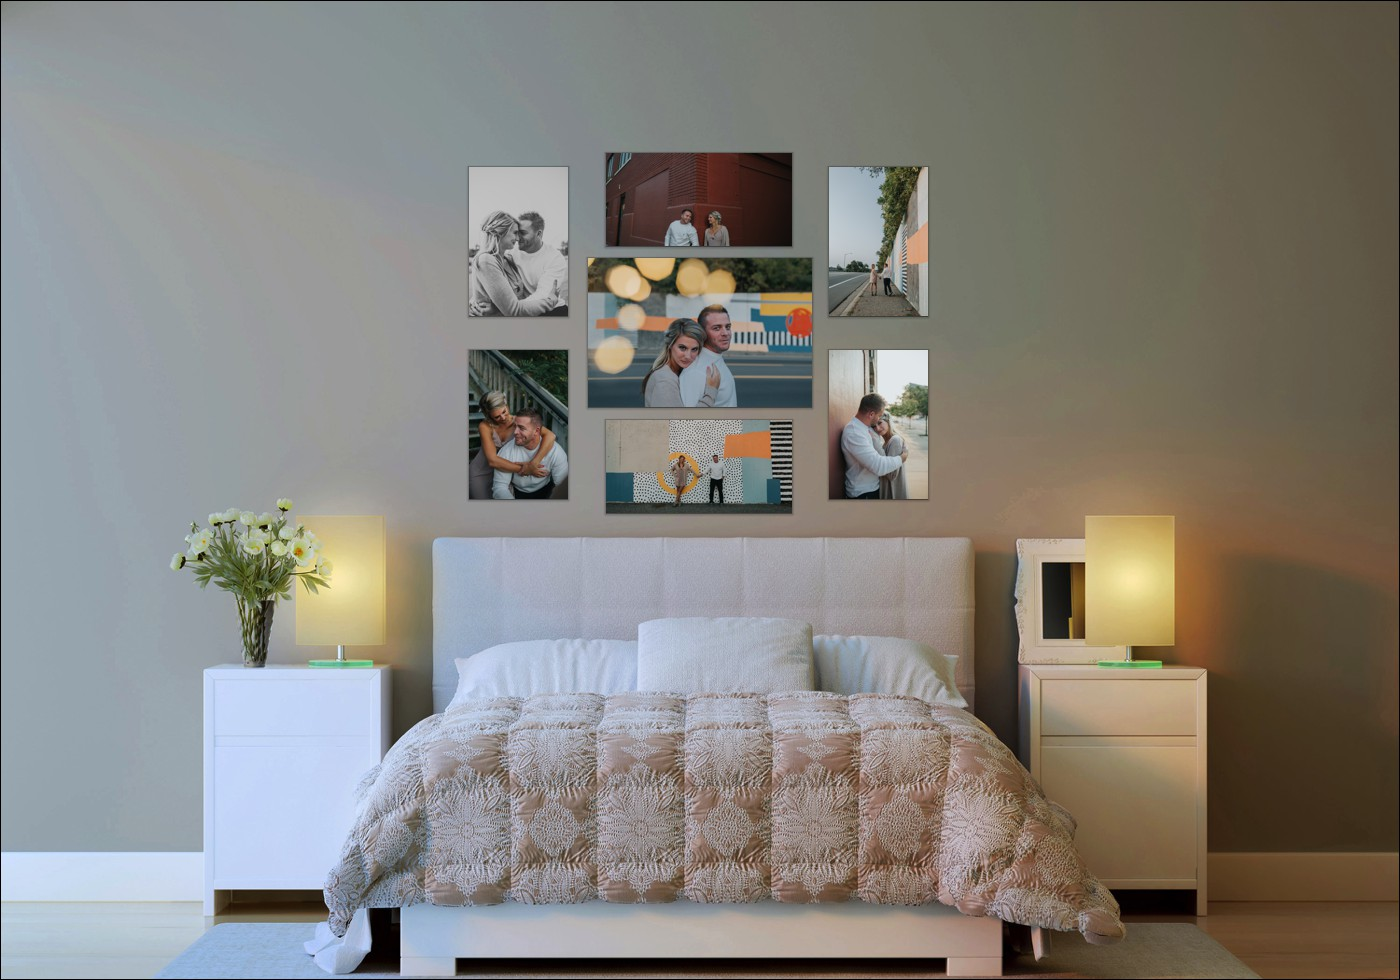 "Your artwork doesn't need to be limited to ""above the mantel"". Almost any wall space can be converted to be a showcase! A bedroom is perfect for engagement, couples sessions, or even a boudoir session! Shown here is a 36 x 24 inch canvas, with four 16 x 24 inch canvases on the sides, and two 30 x 15 inch canvases on the top and bottom. Different sizes draw the eye to different photos, and provide balance for your space."